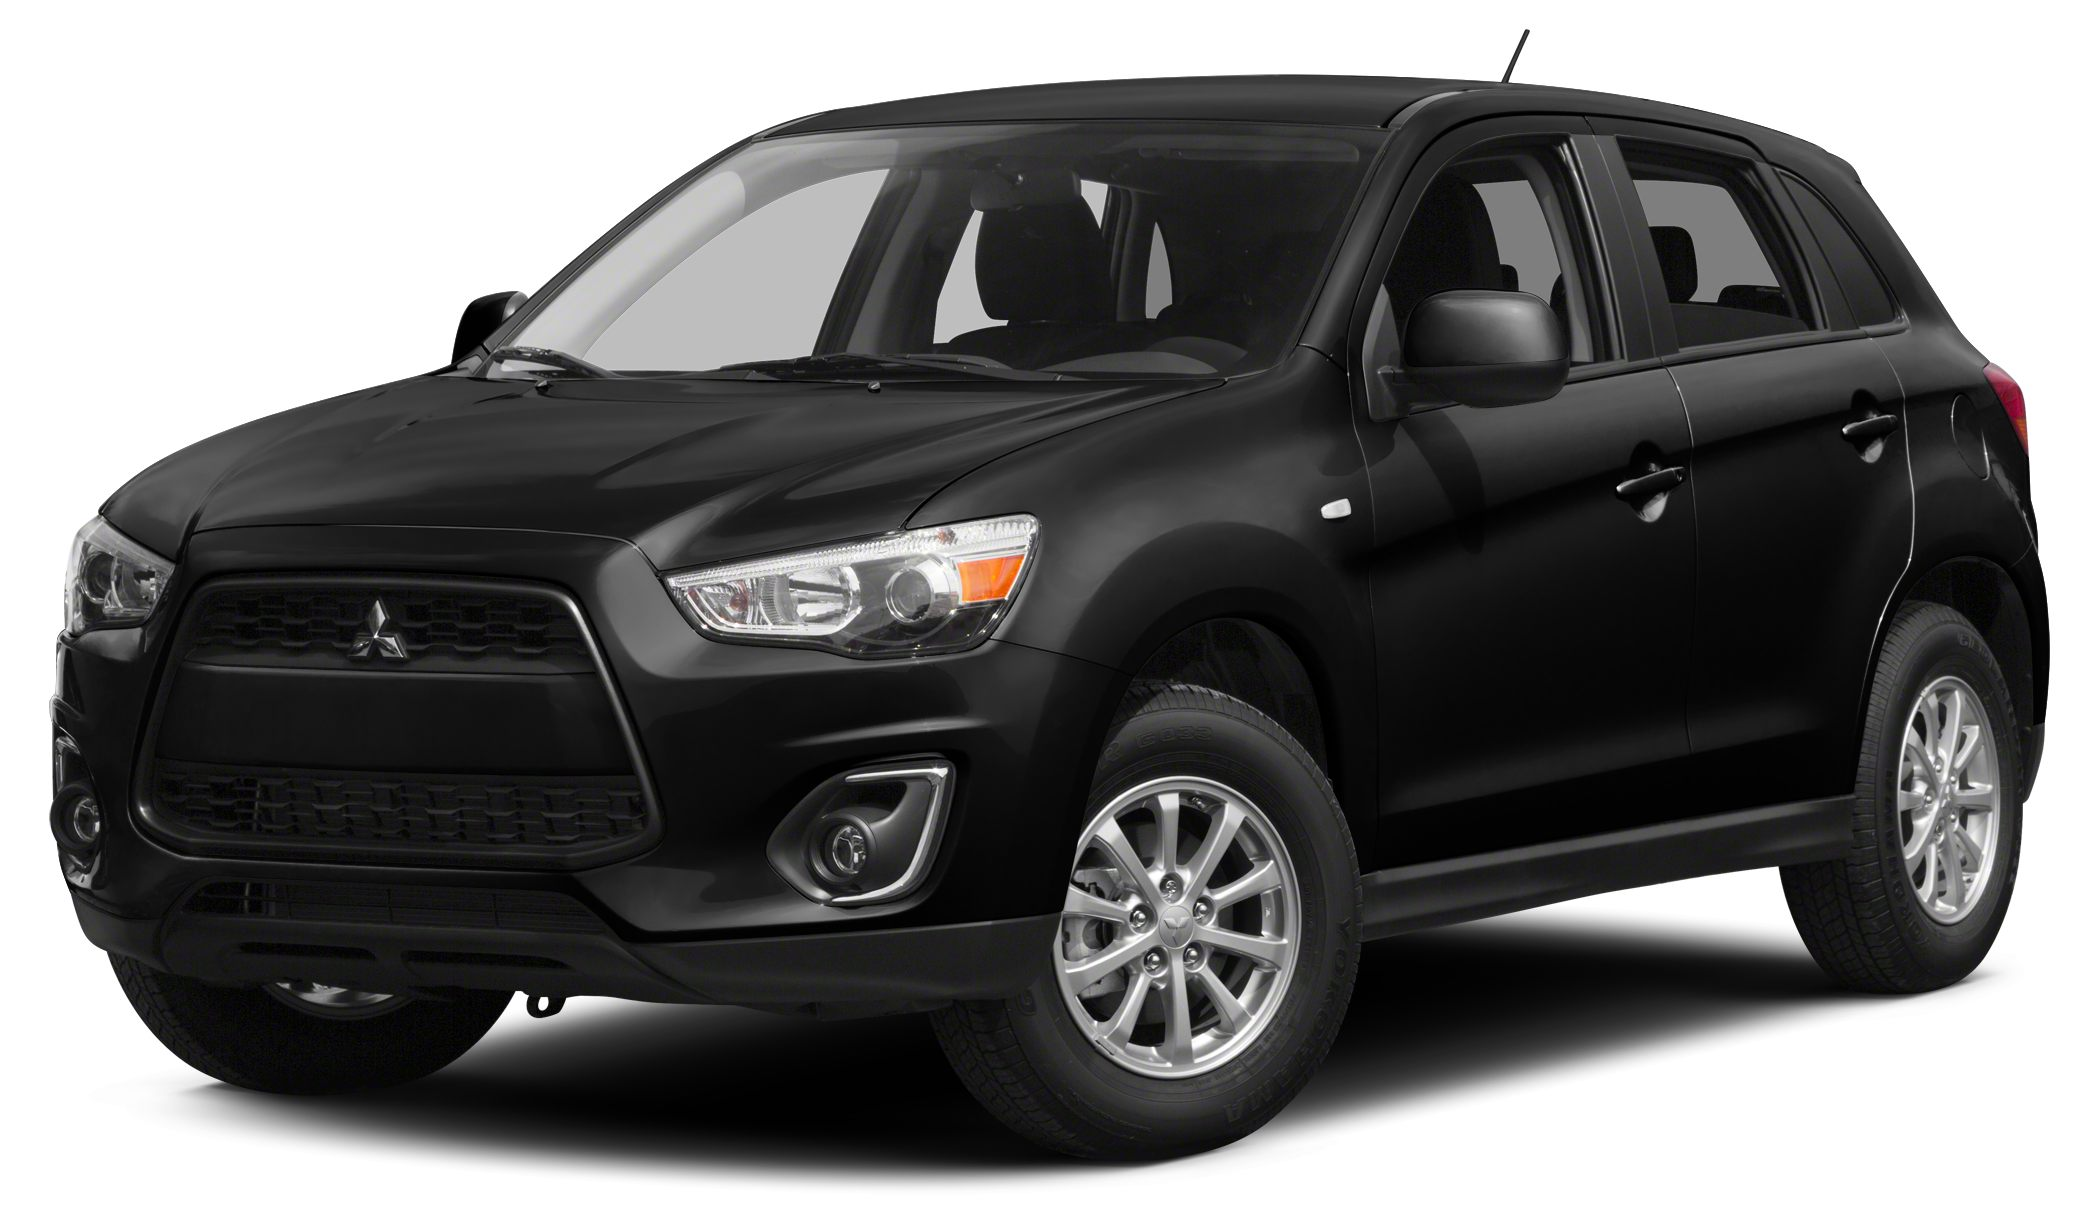 2015 Mitsubishi Outlander Sport SE Mp3 satellite radio and traction control are part of the compl